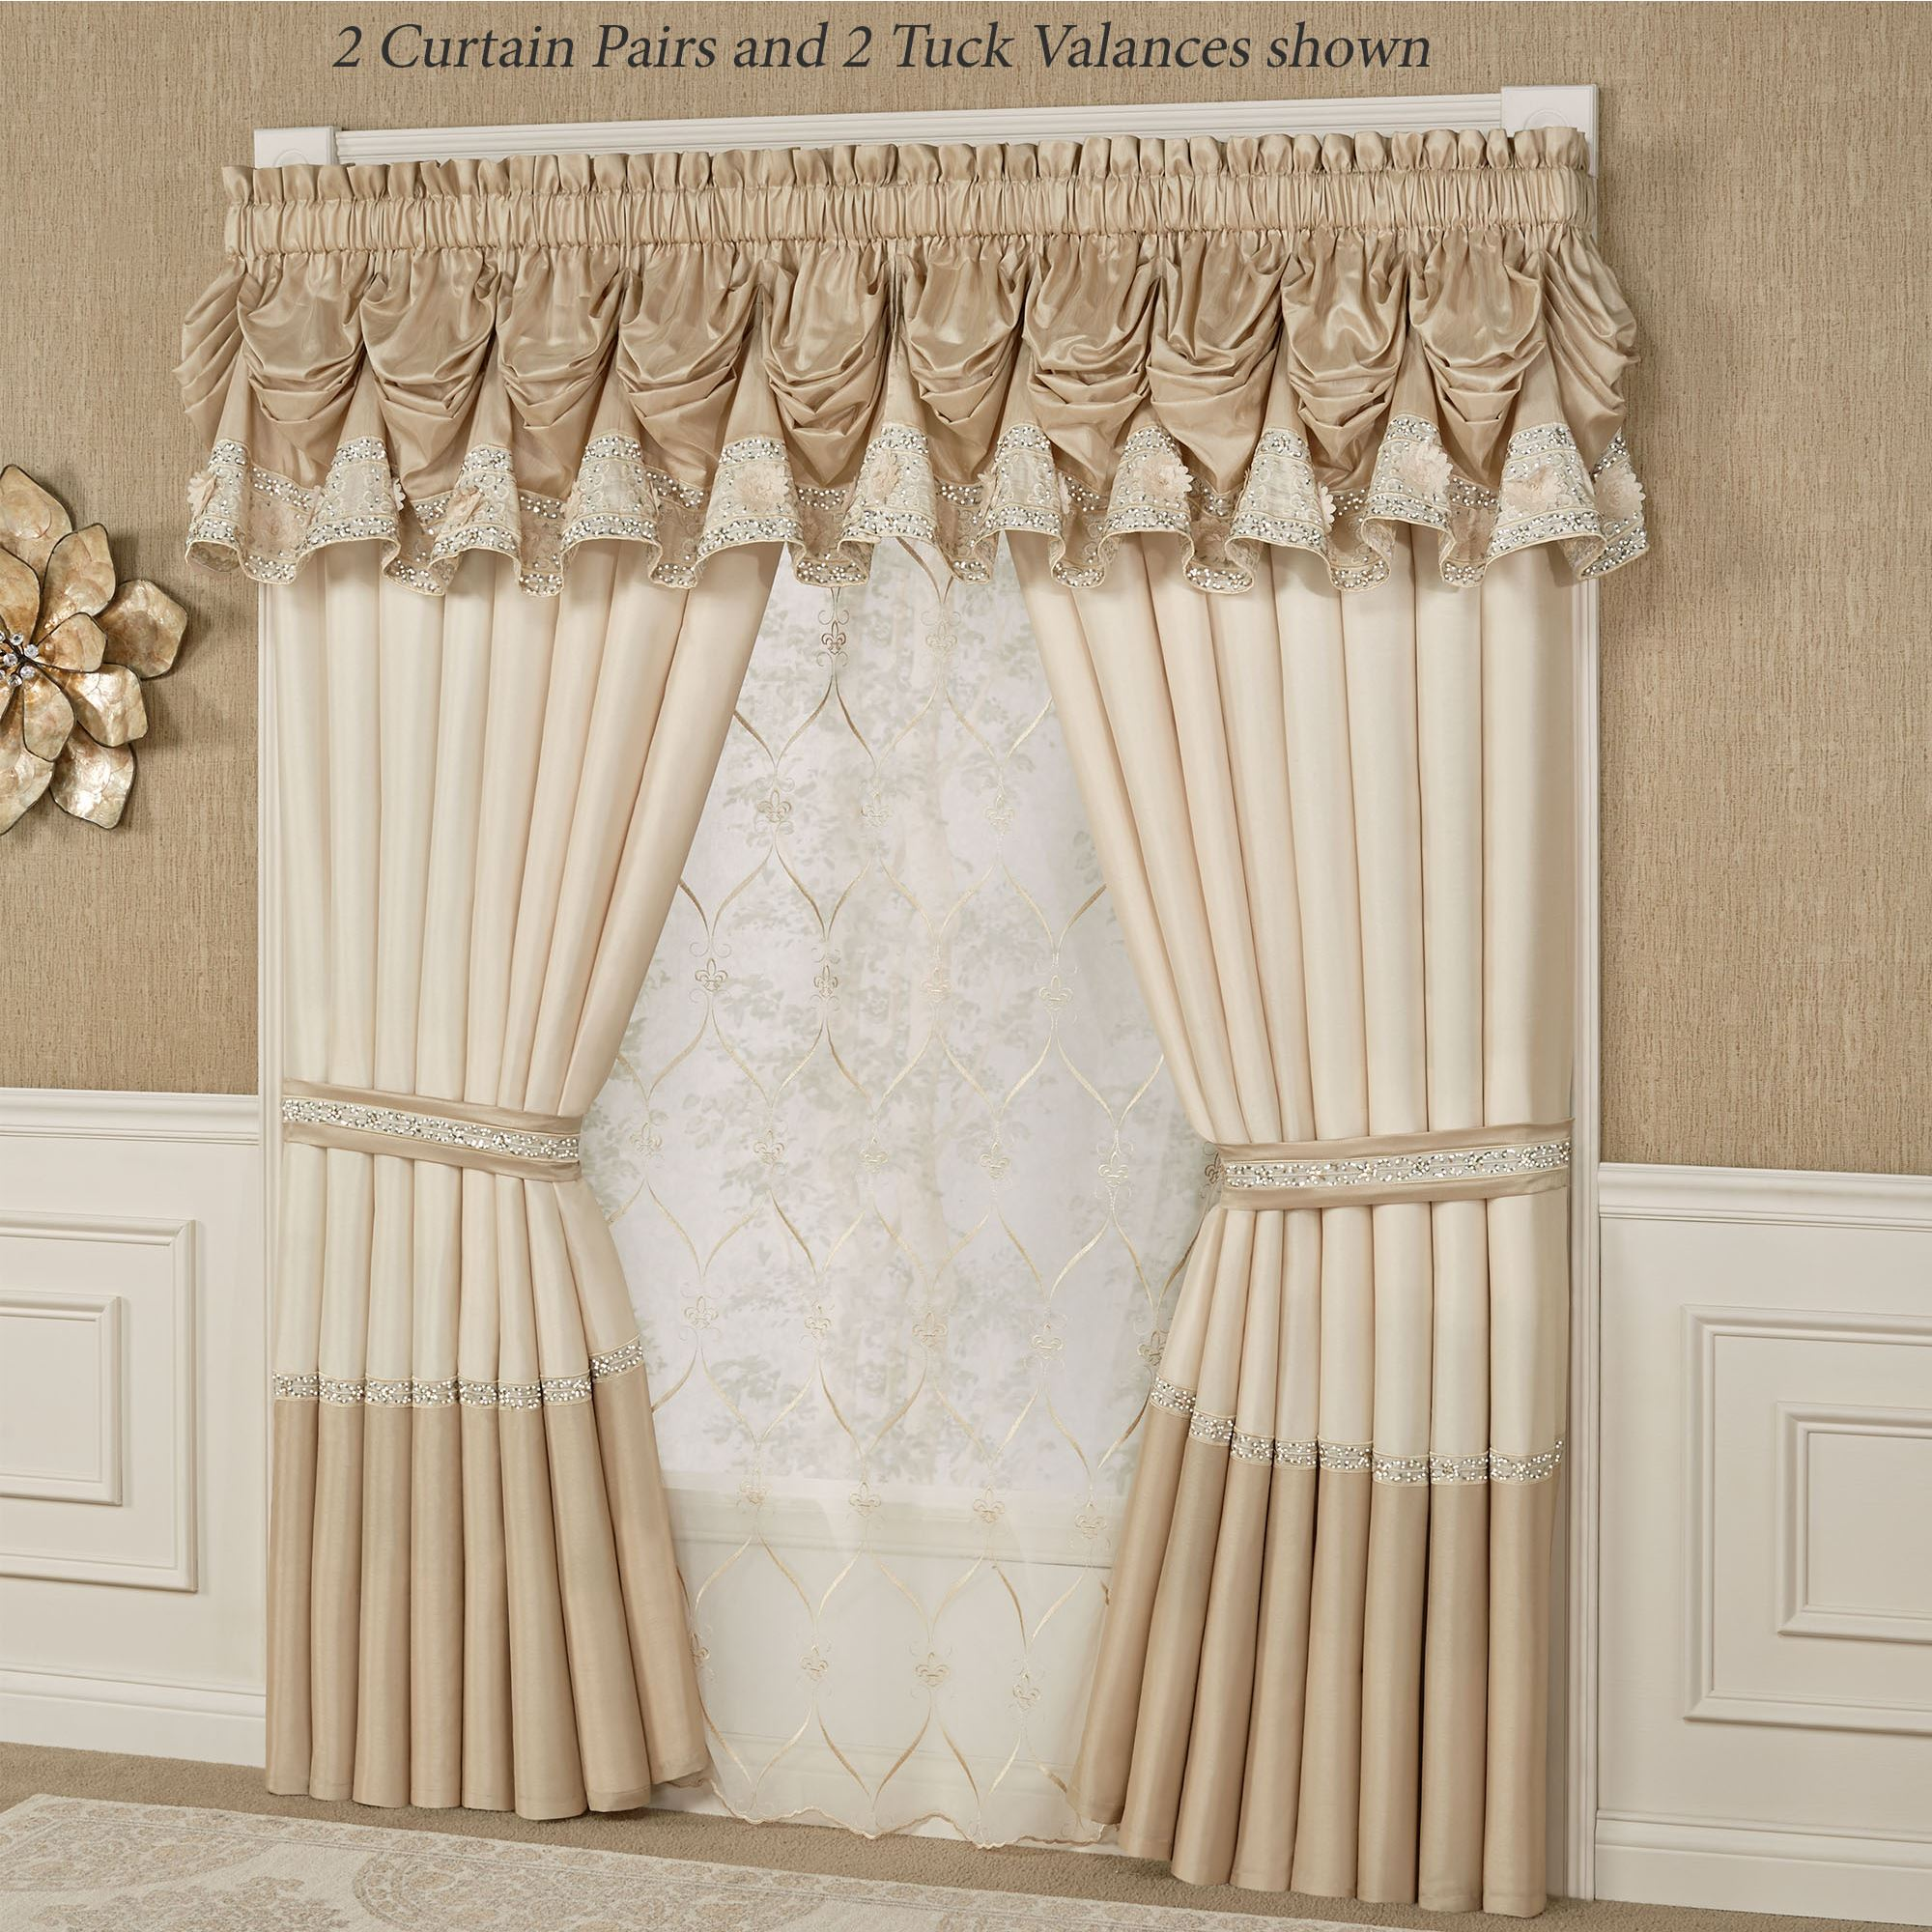 Elegant Kitchen Curtains Valances: Elegante Sequined Tuck Valance Window Treatment